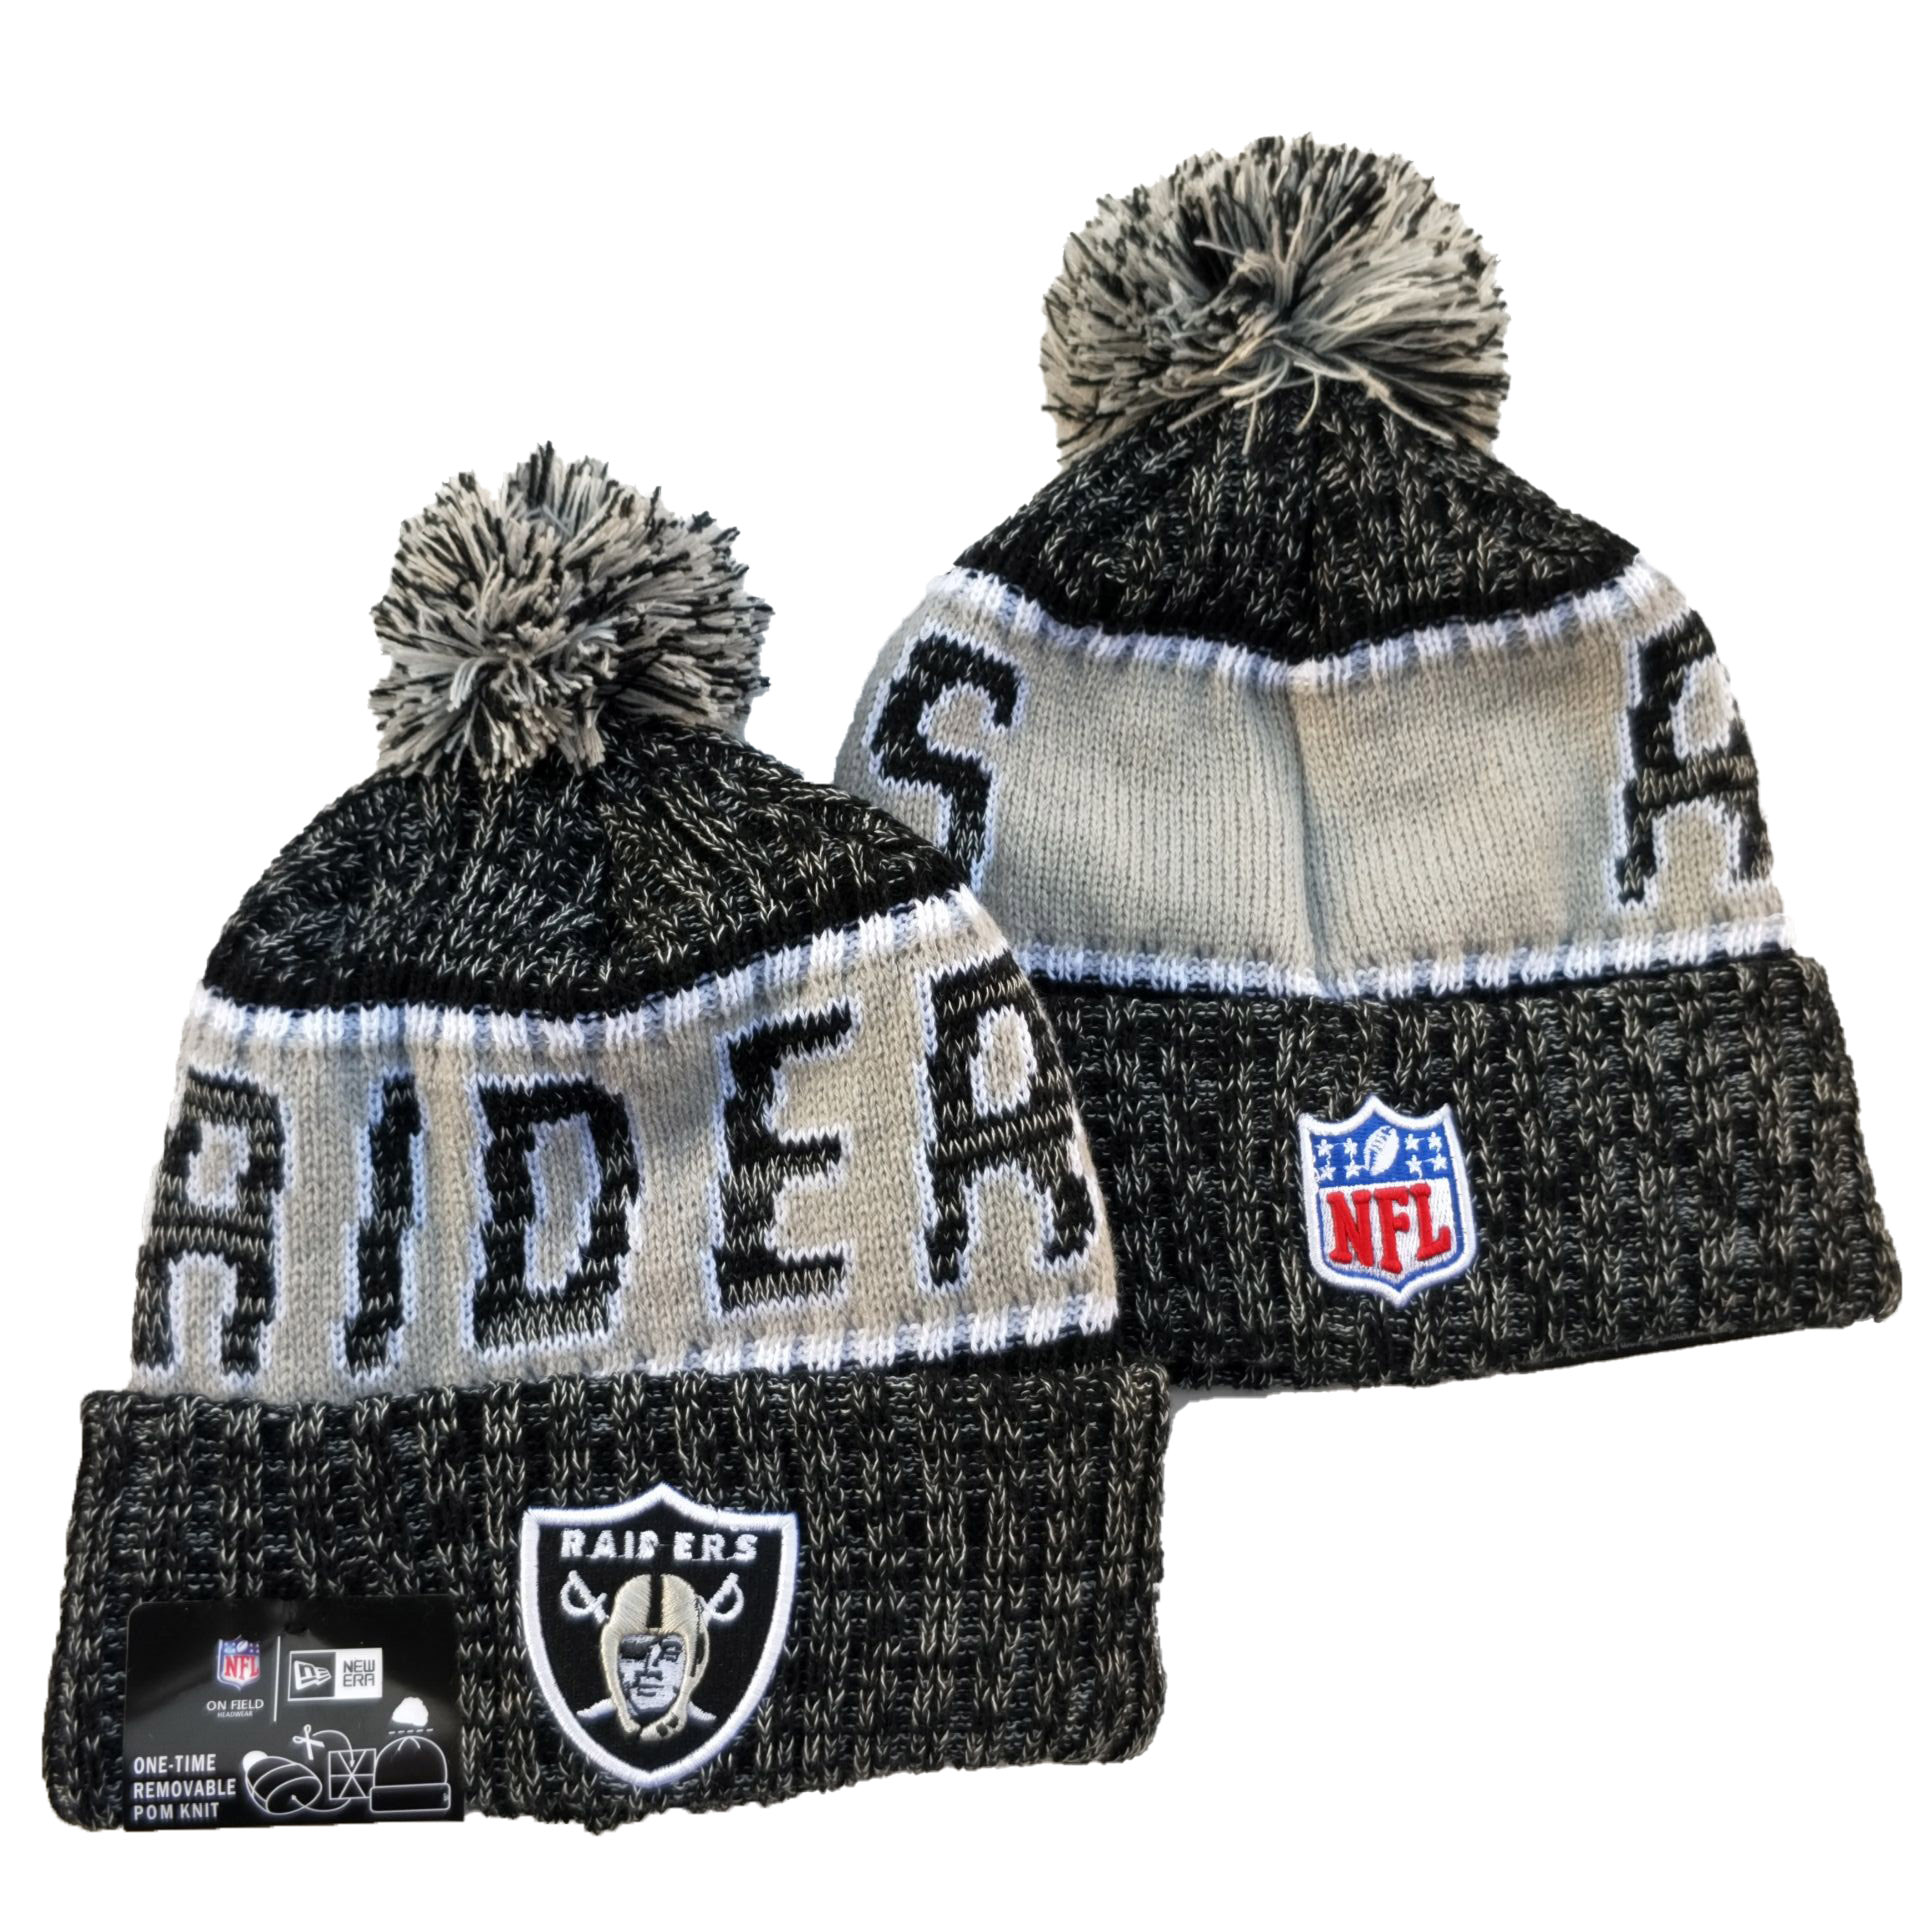 NFL Las Vegas Raiders Knits Hats 021